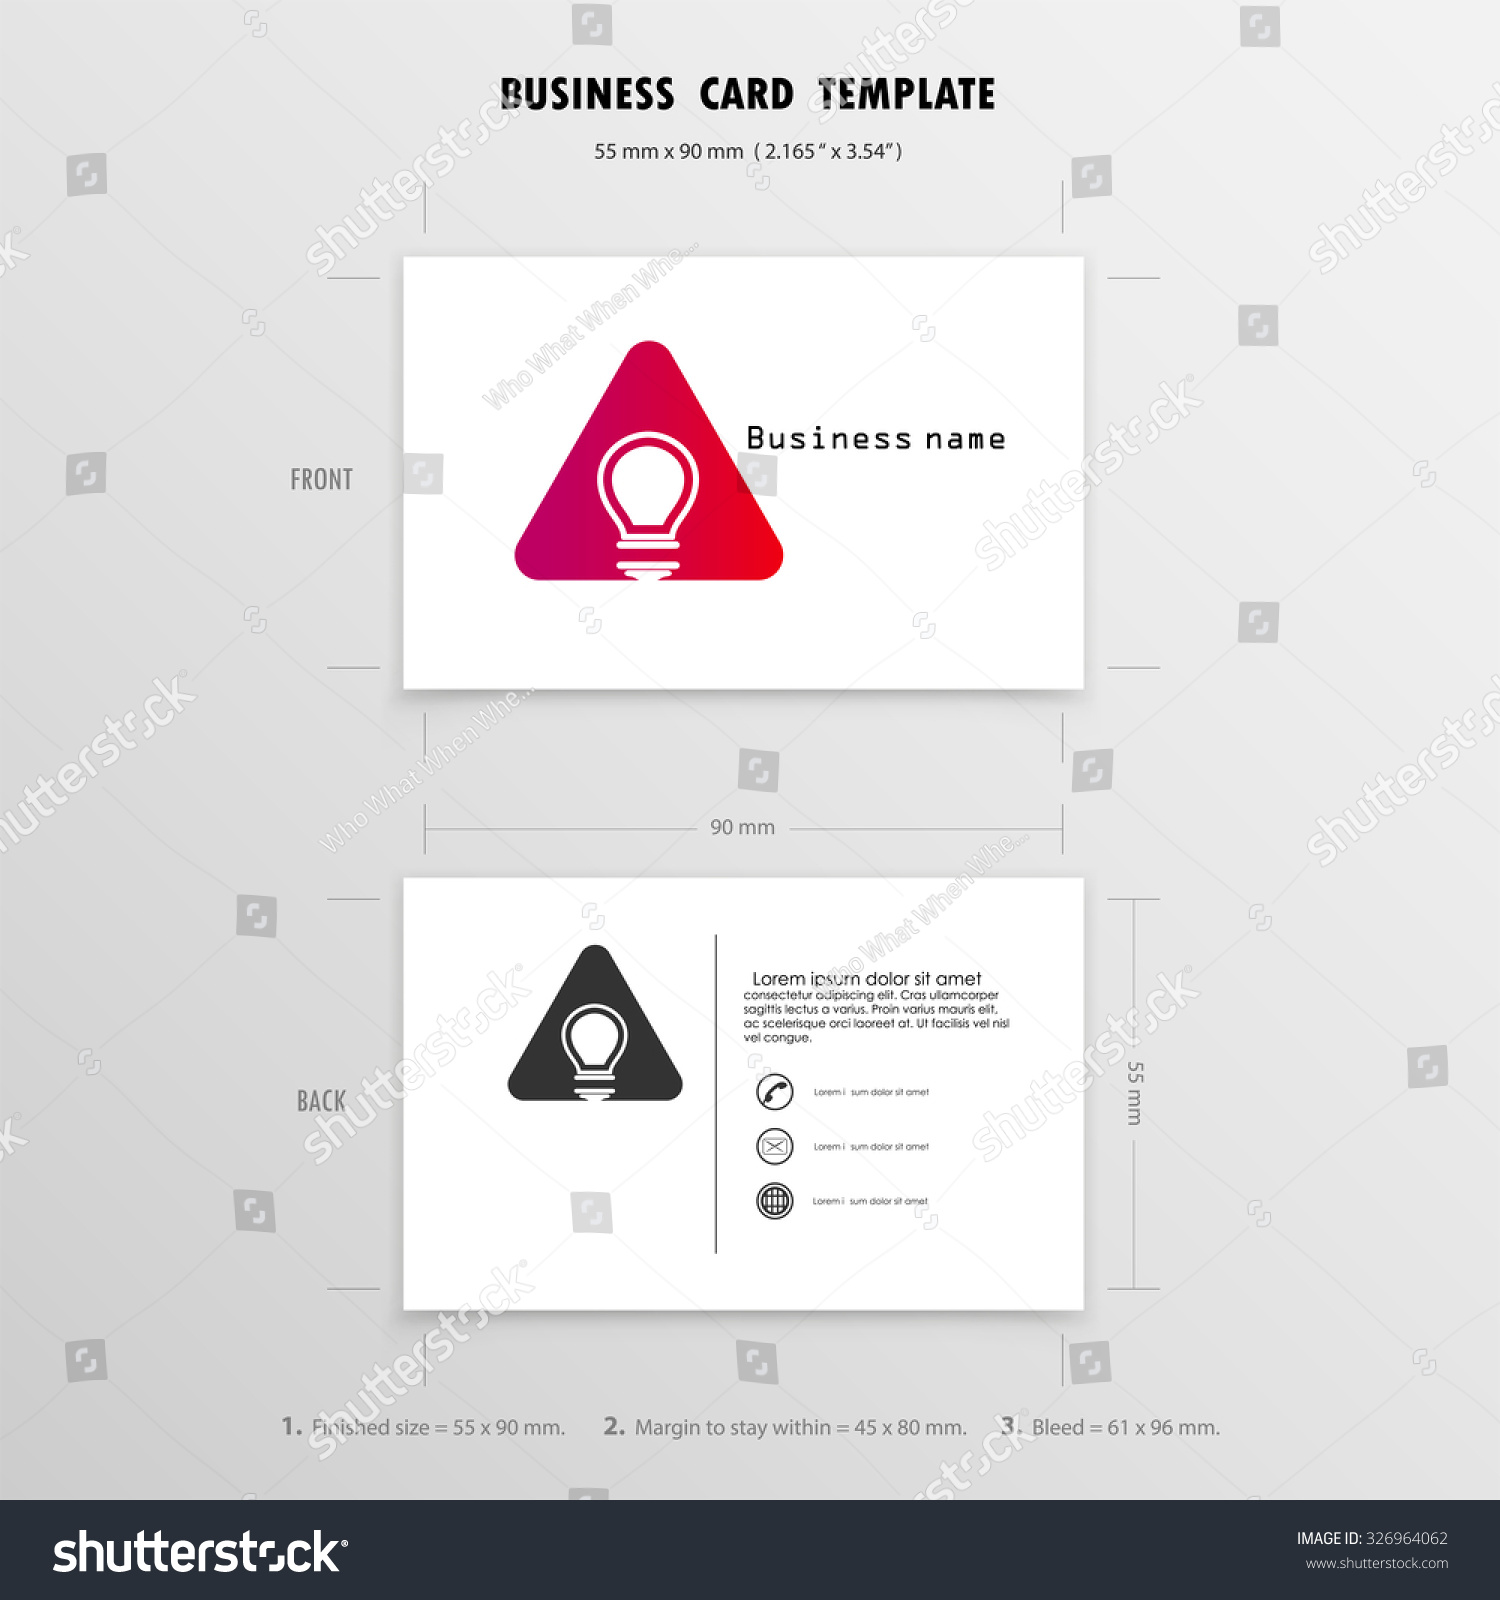 Lovely Image Of Sizes Of Business Cards – Business Cards and Resume